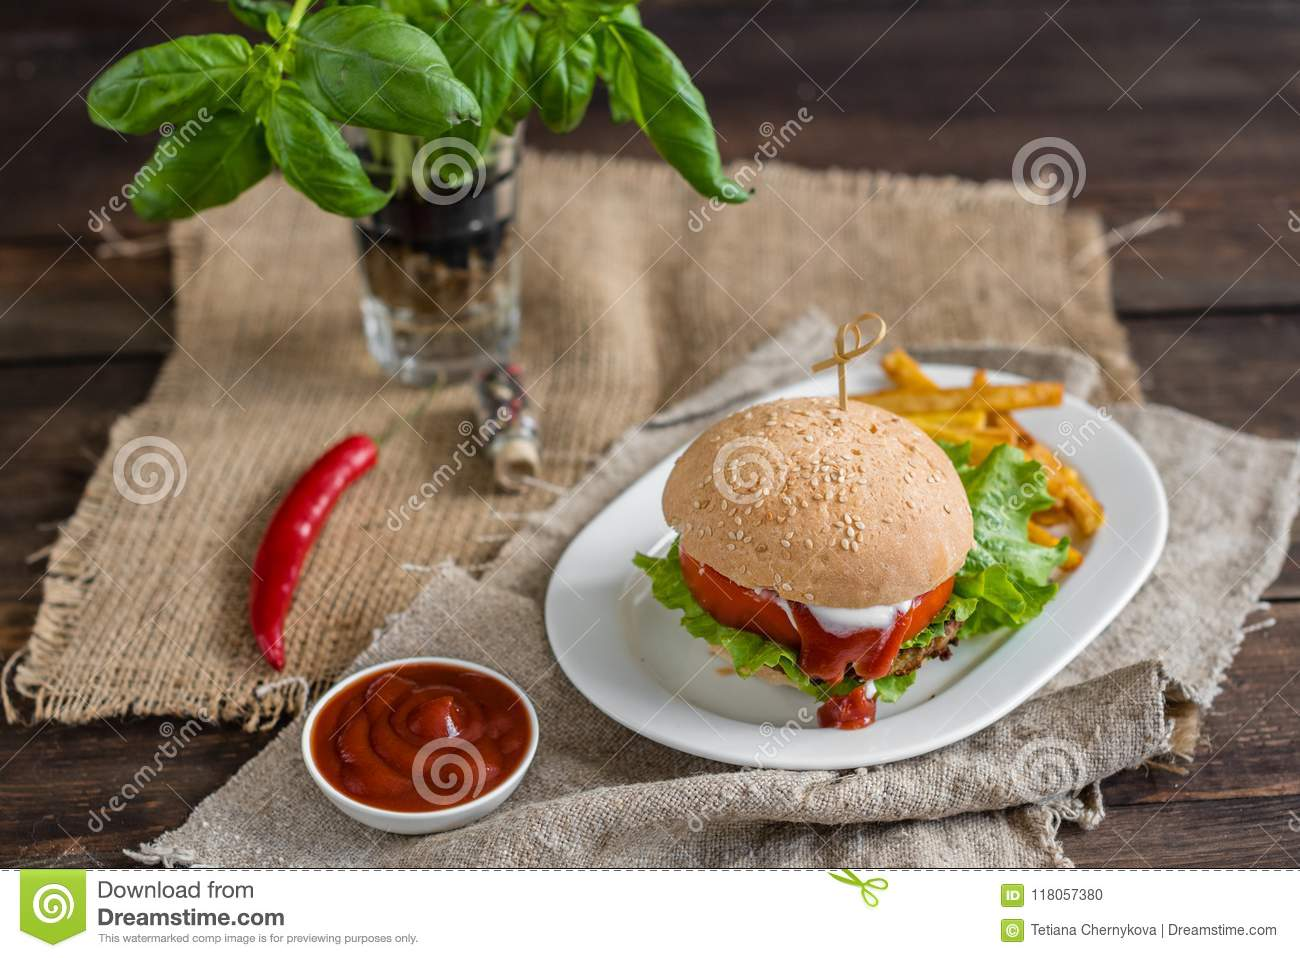 Tasty hamburger with meat and vegetables against a dark background